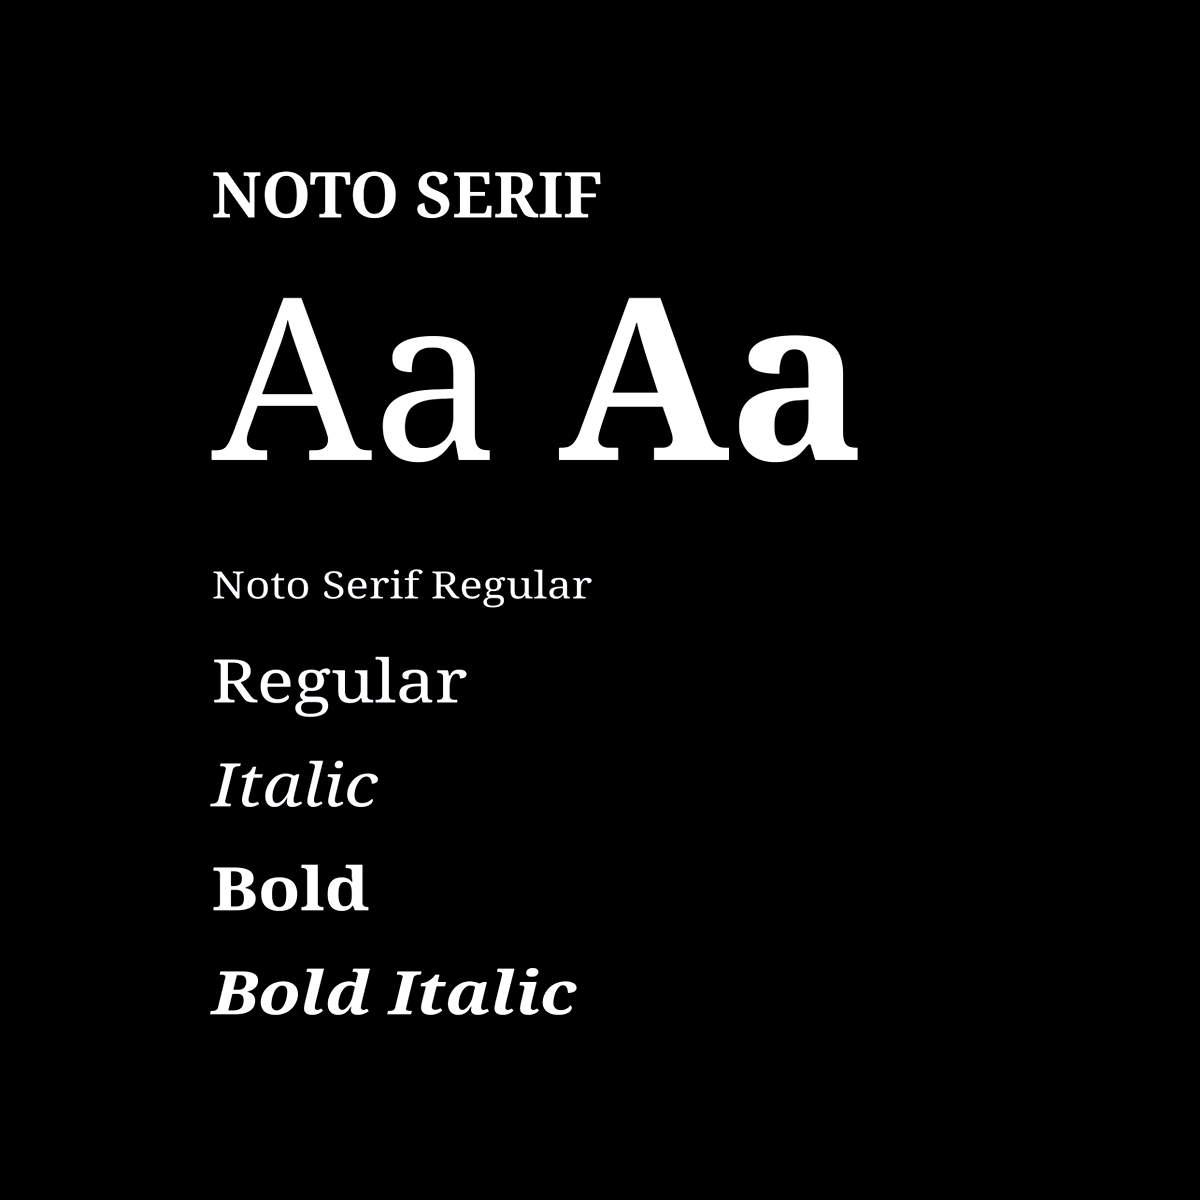 Preview of Noto Serif Typeface